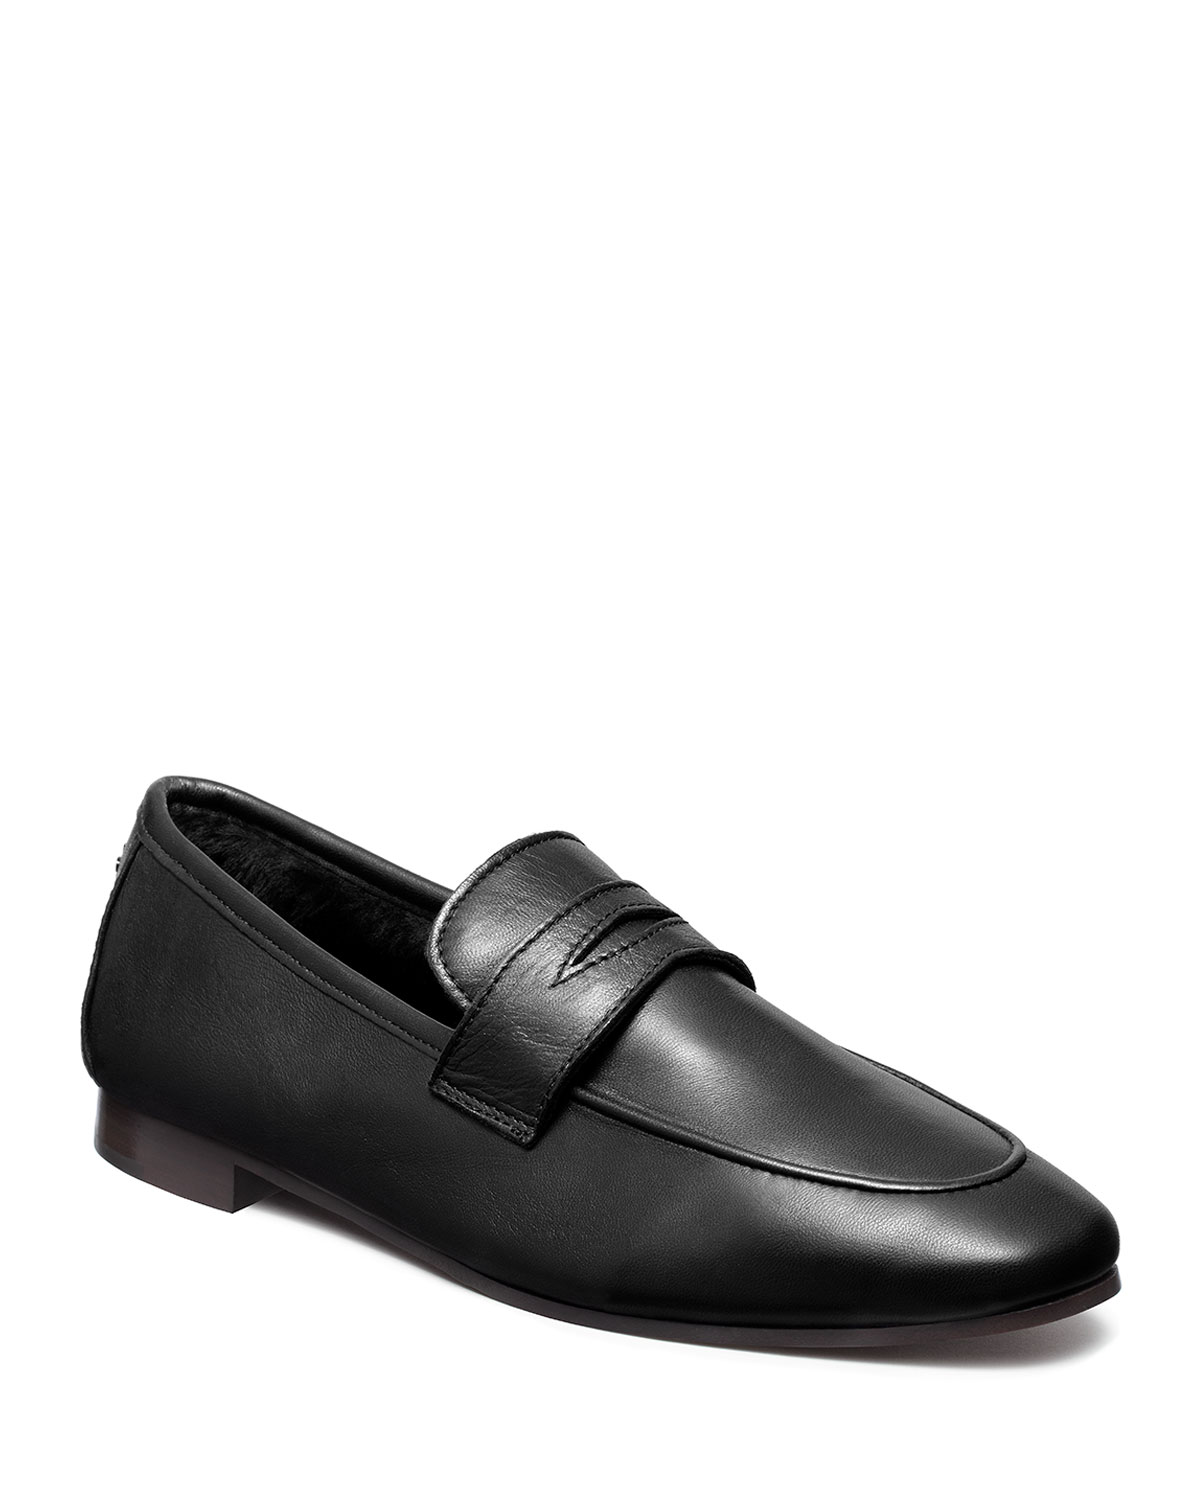 Leather Penny Loafers w/ Shearling Trim